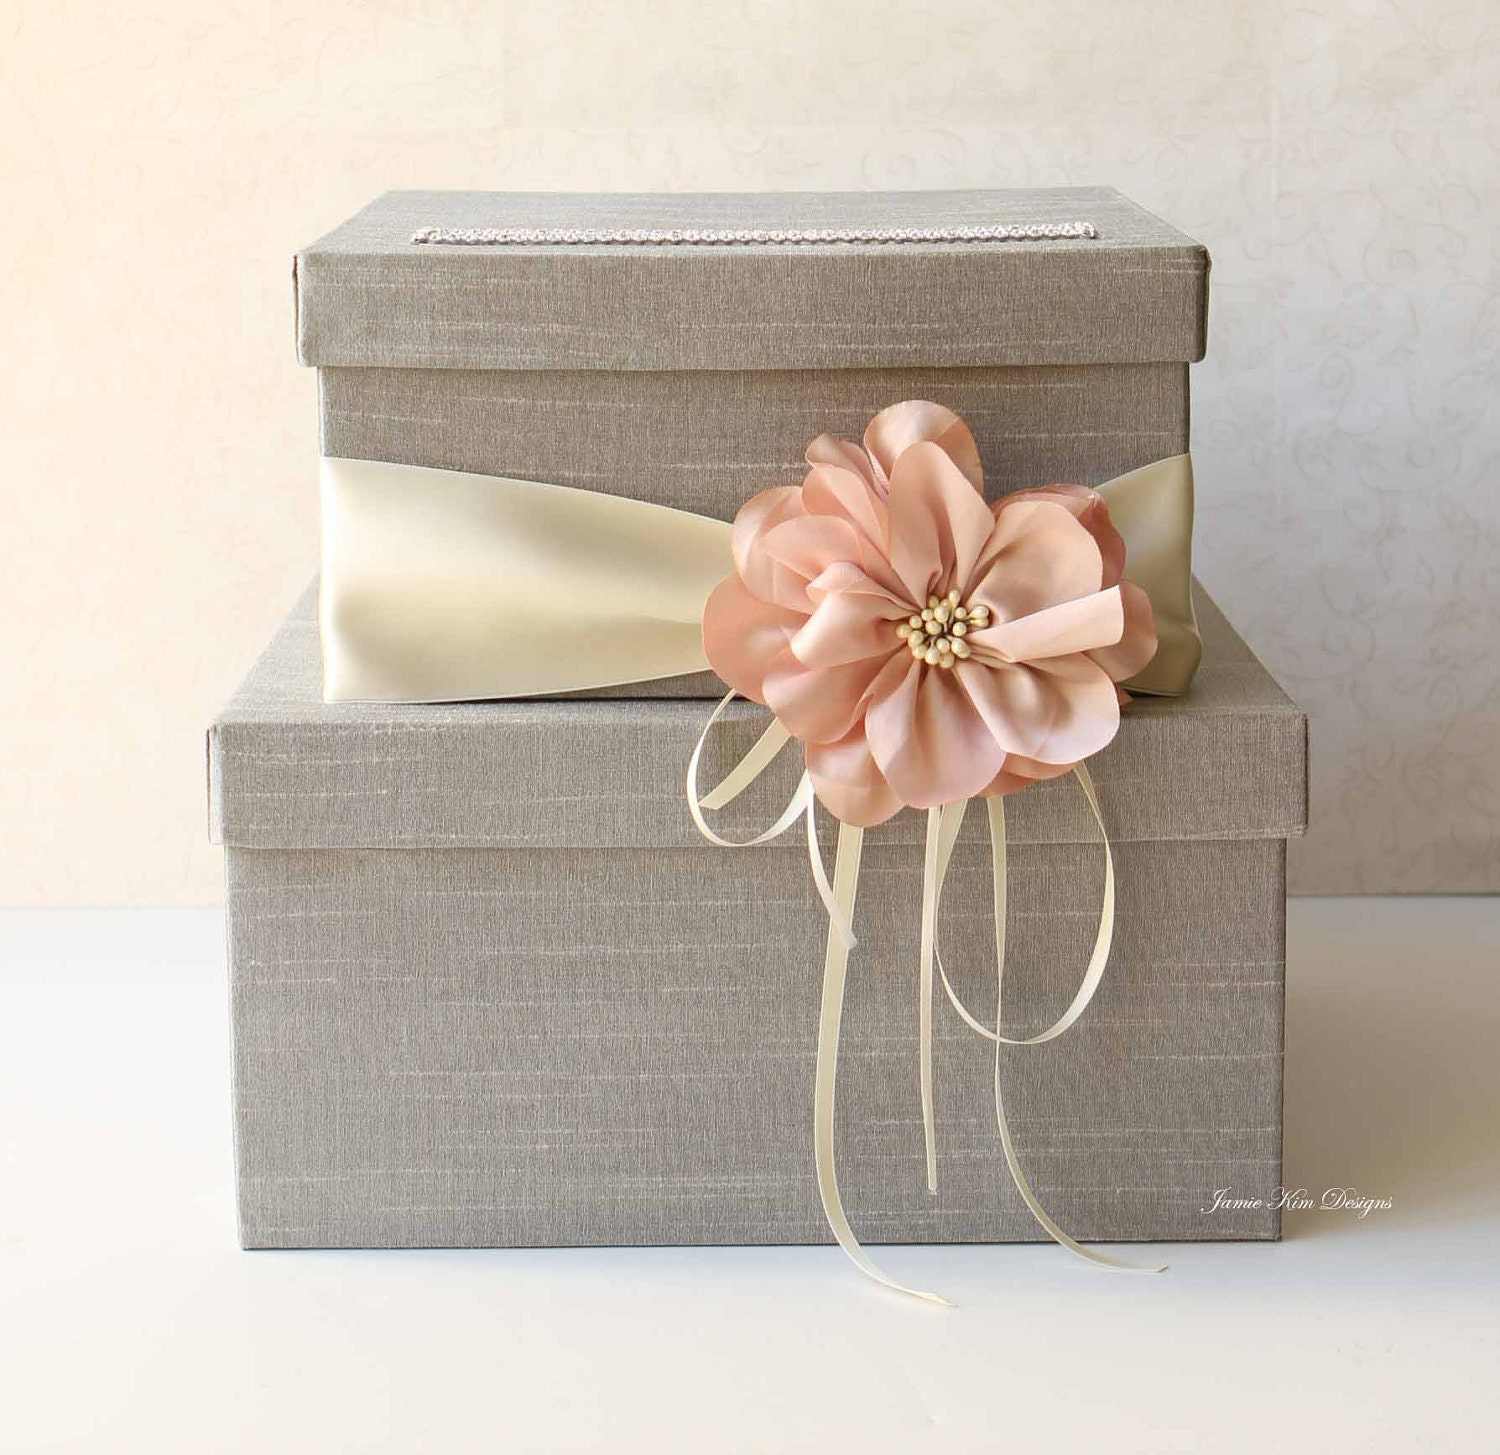 Wedding Gift Box Picture : Wedding Card Box Wedding Money Box Gift Card by jamiekimdesigns